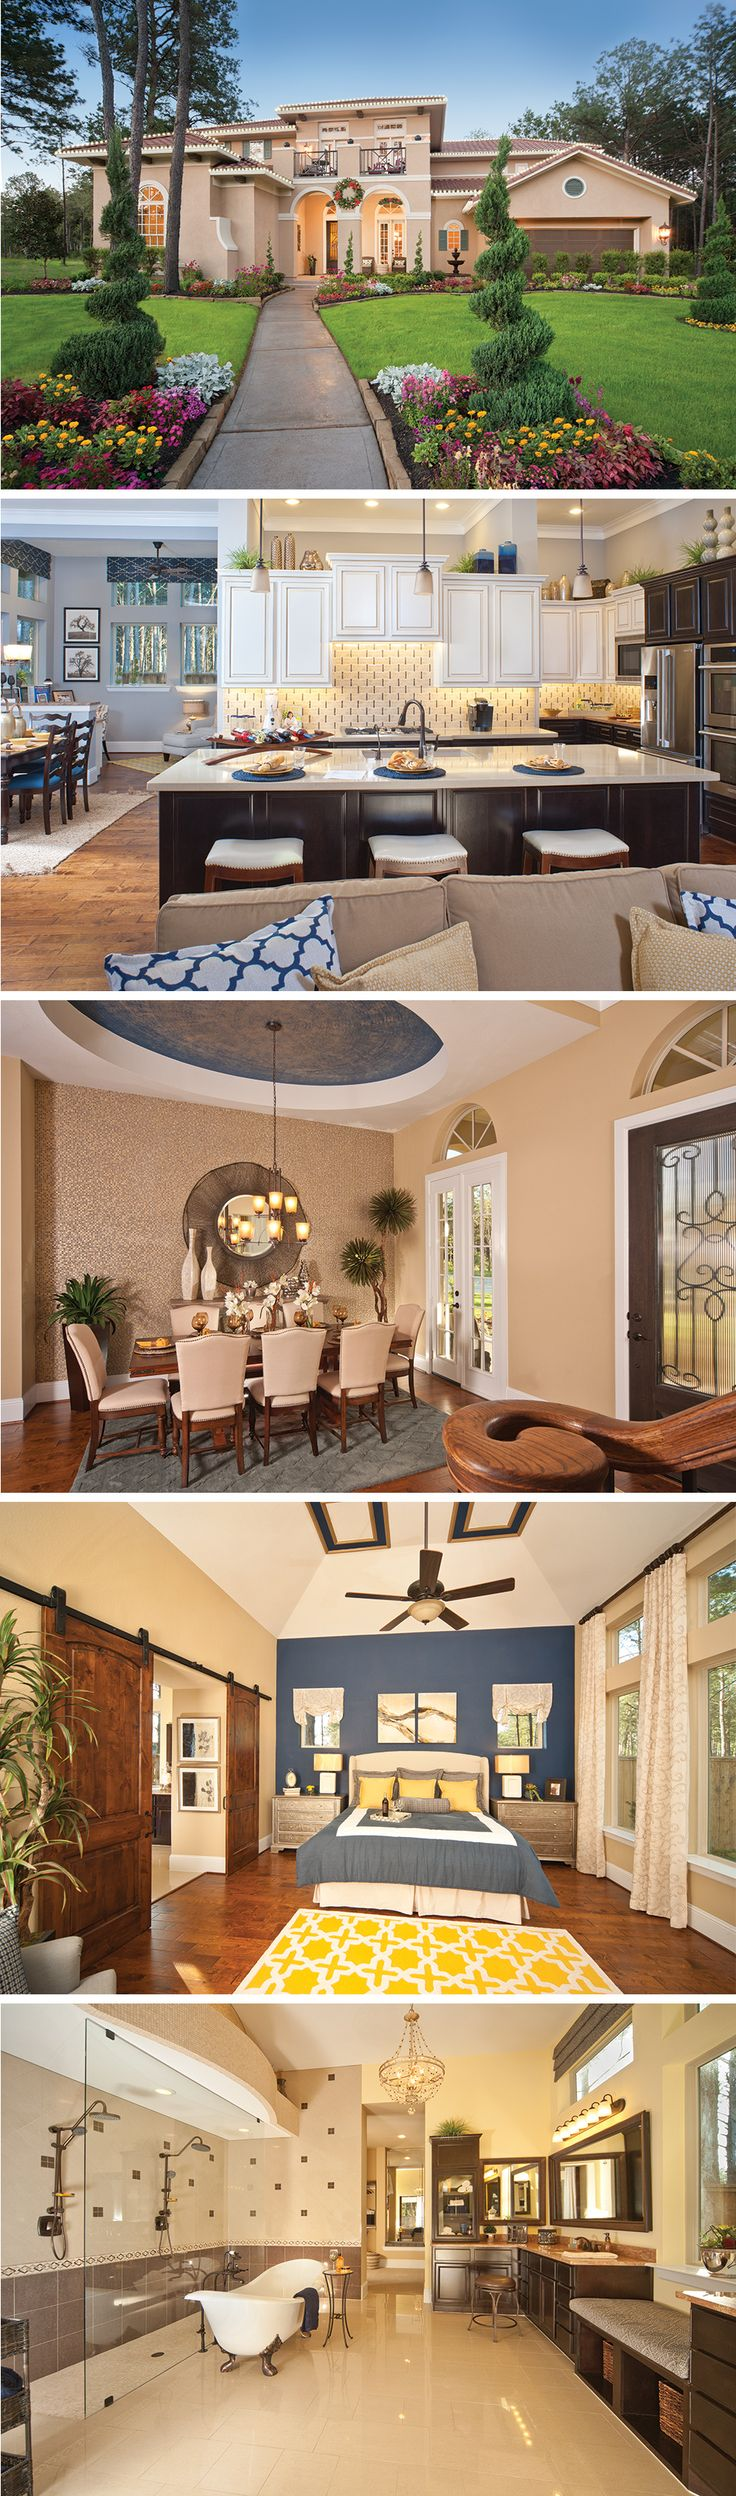 The Springdale  by David Weekley Homes in The Woodlands is a 5 bedroom, 5 bathroom floorplan that features high tray ceilings, an open kitchen and family room layout, and a covered porch.